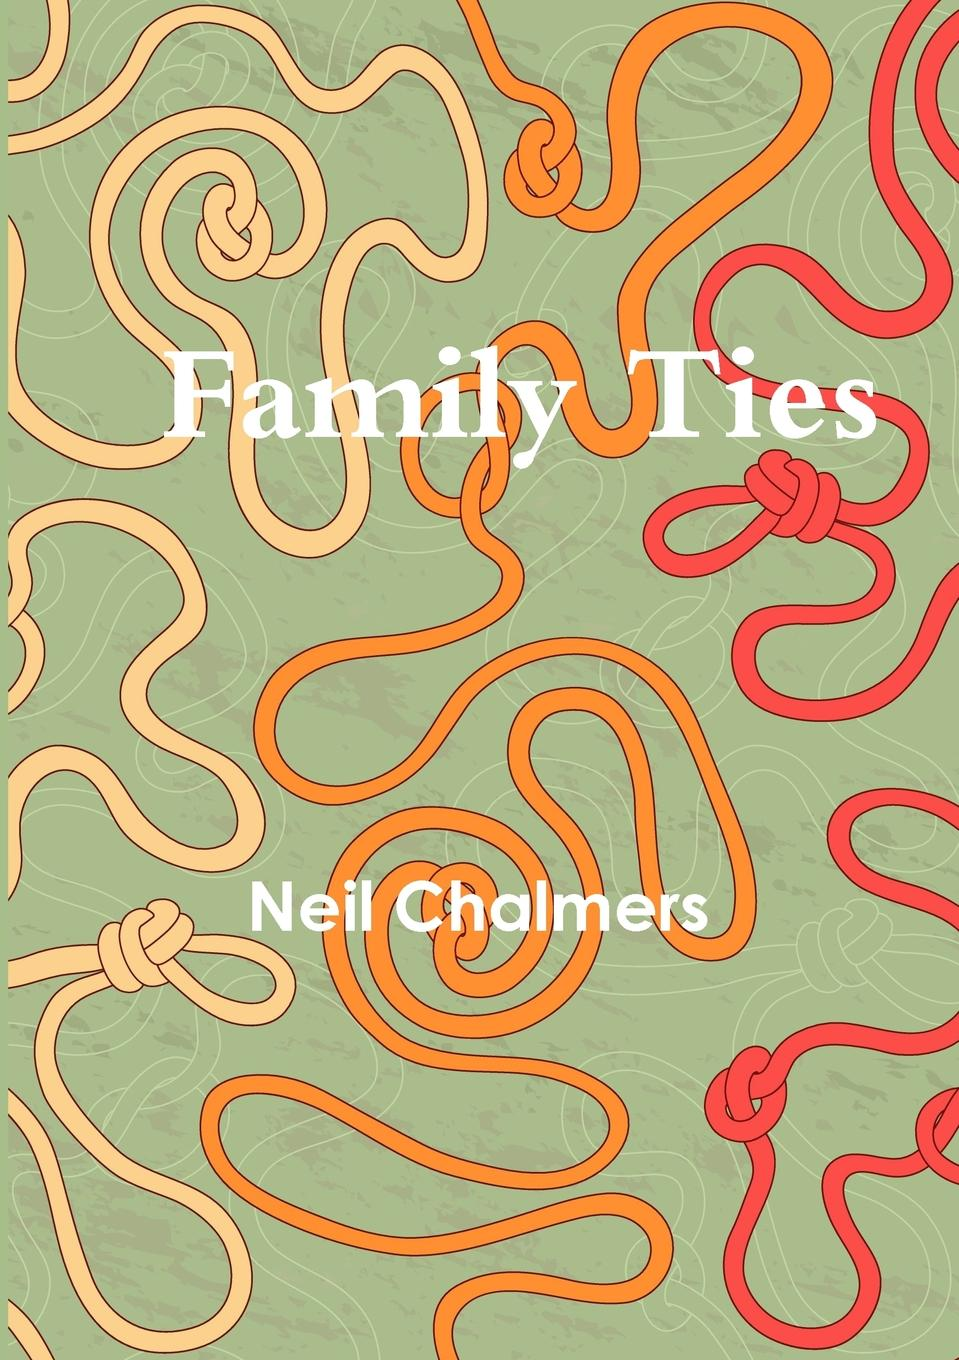 Neil Chalmers Family Ties